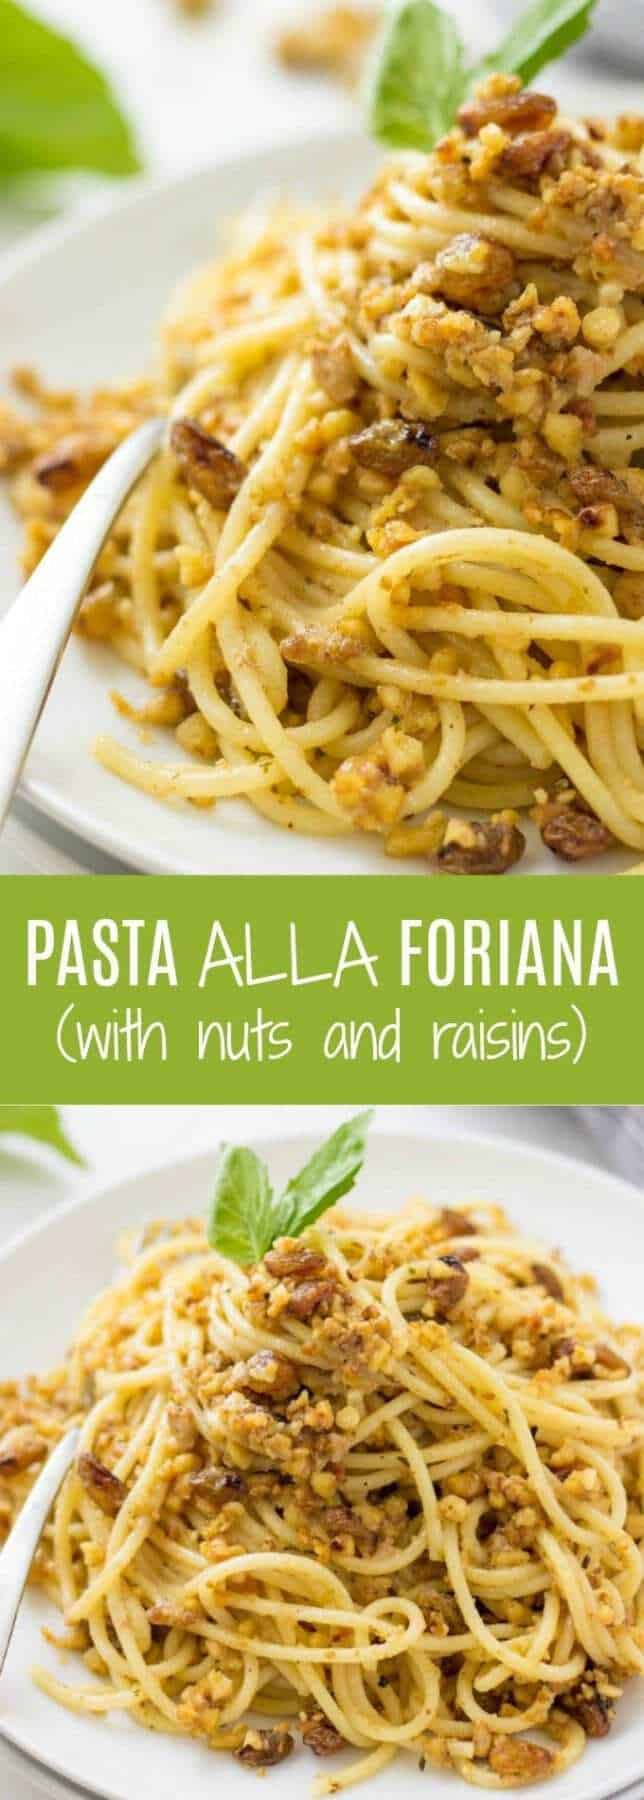 This HEALTHY Pasta Alla Foriana is a 20-minute dinner idea that everyone will love. Nutty, crunchy and slightly sweet sauce is so addictive!